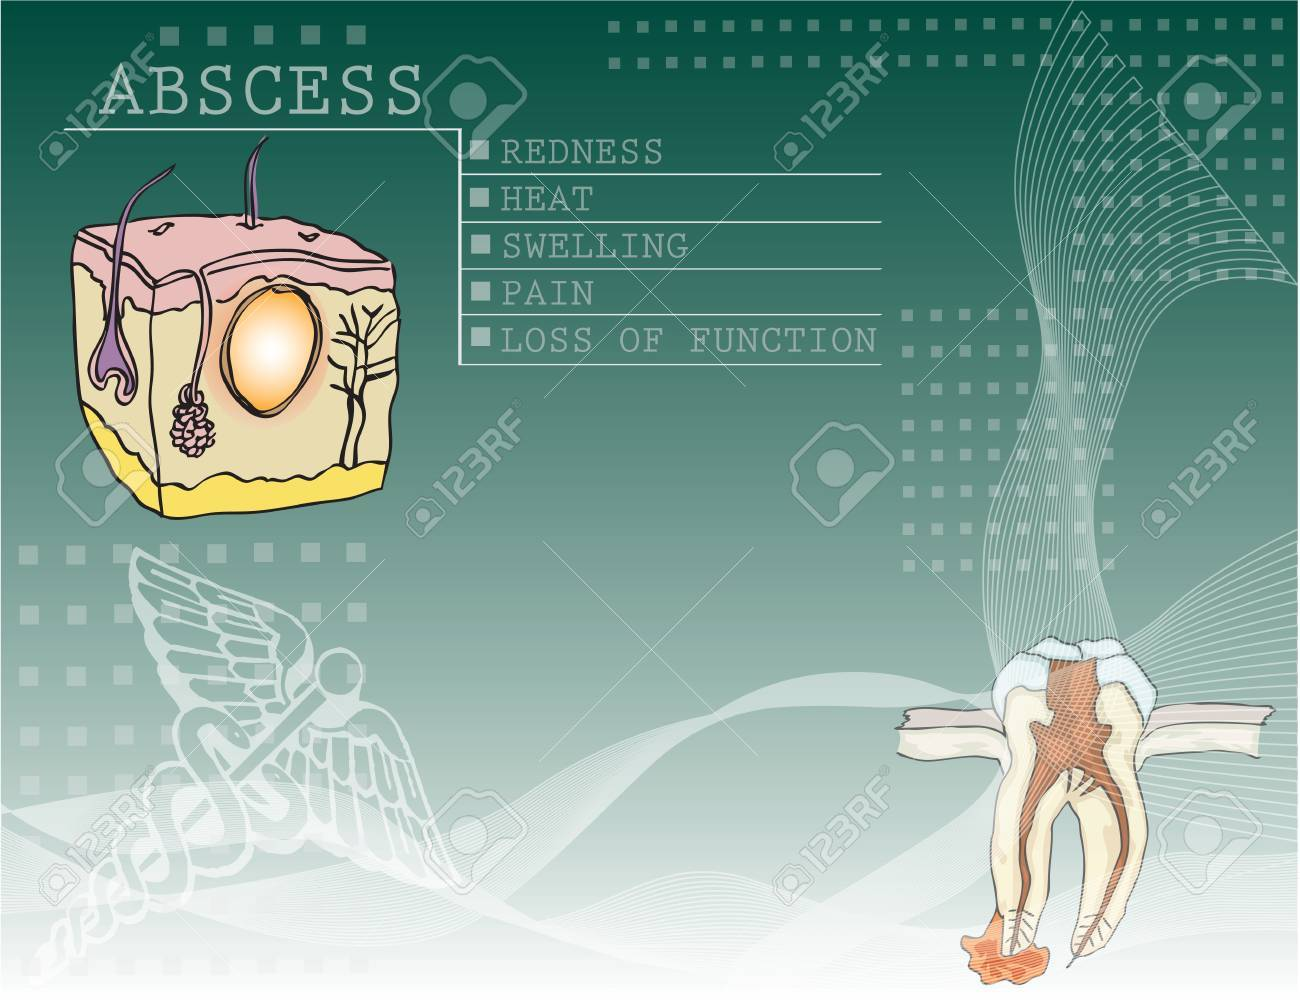 The background to the disease abscess with illustrations and medical symbols. Stock Vector - 10882162